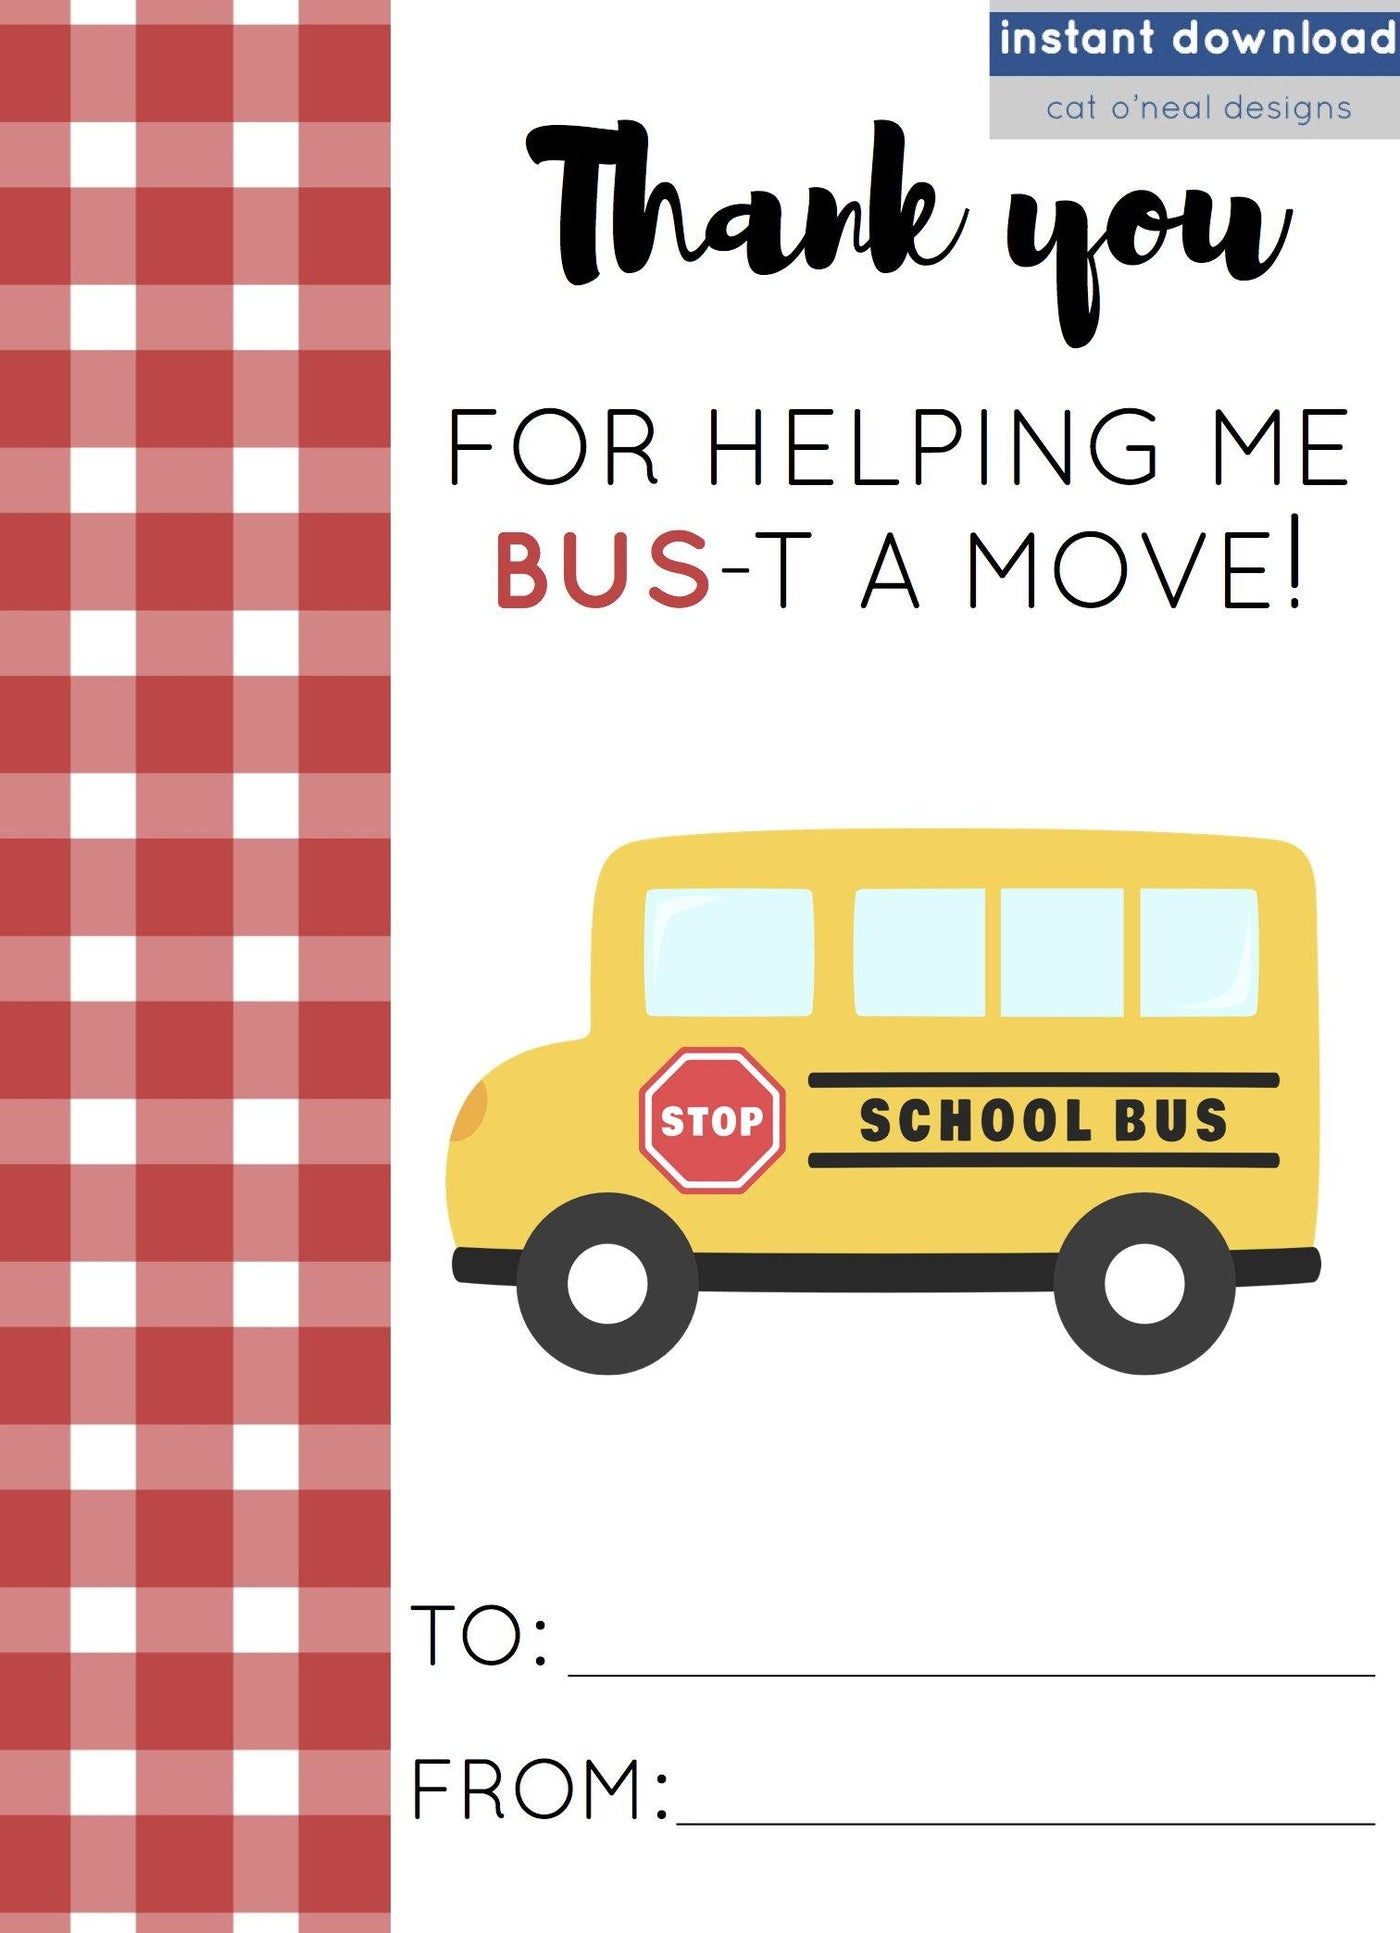 PRINTABLE || THANK YOU FOR HELPING ME BUS-T A MOVE